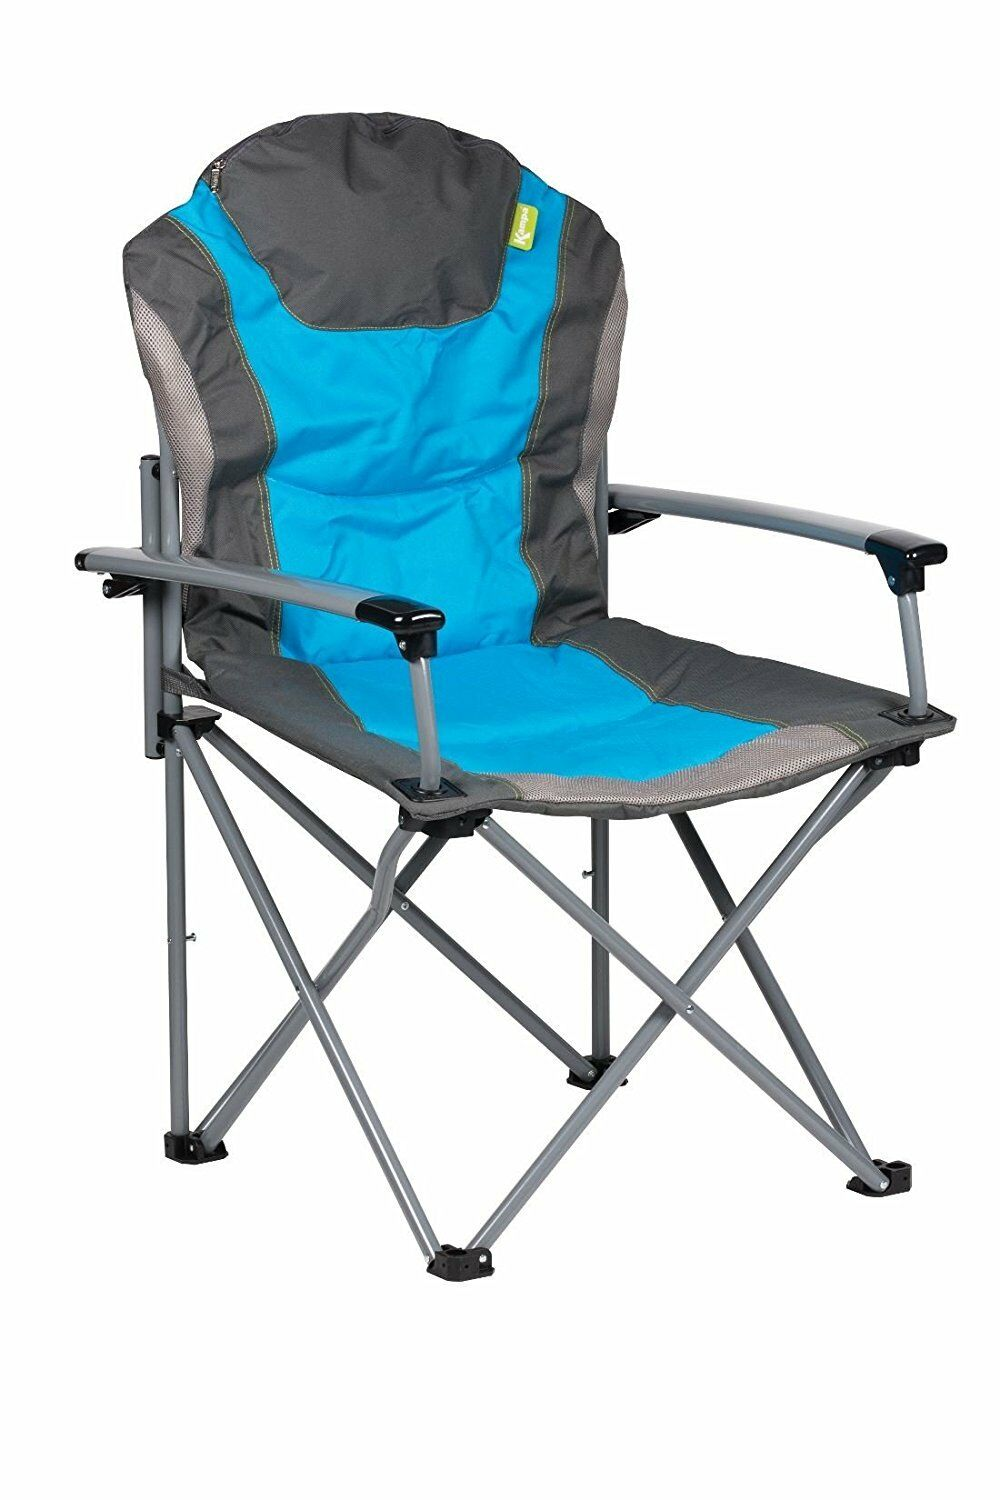 GUV'NOR FOLDING LIGHTWEIGHT CAMPING ARMCHAIR seat seat seat is a foldable Blau chair 0b14be